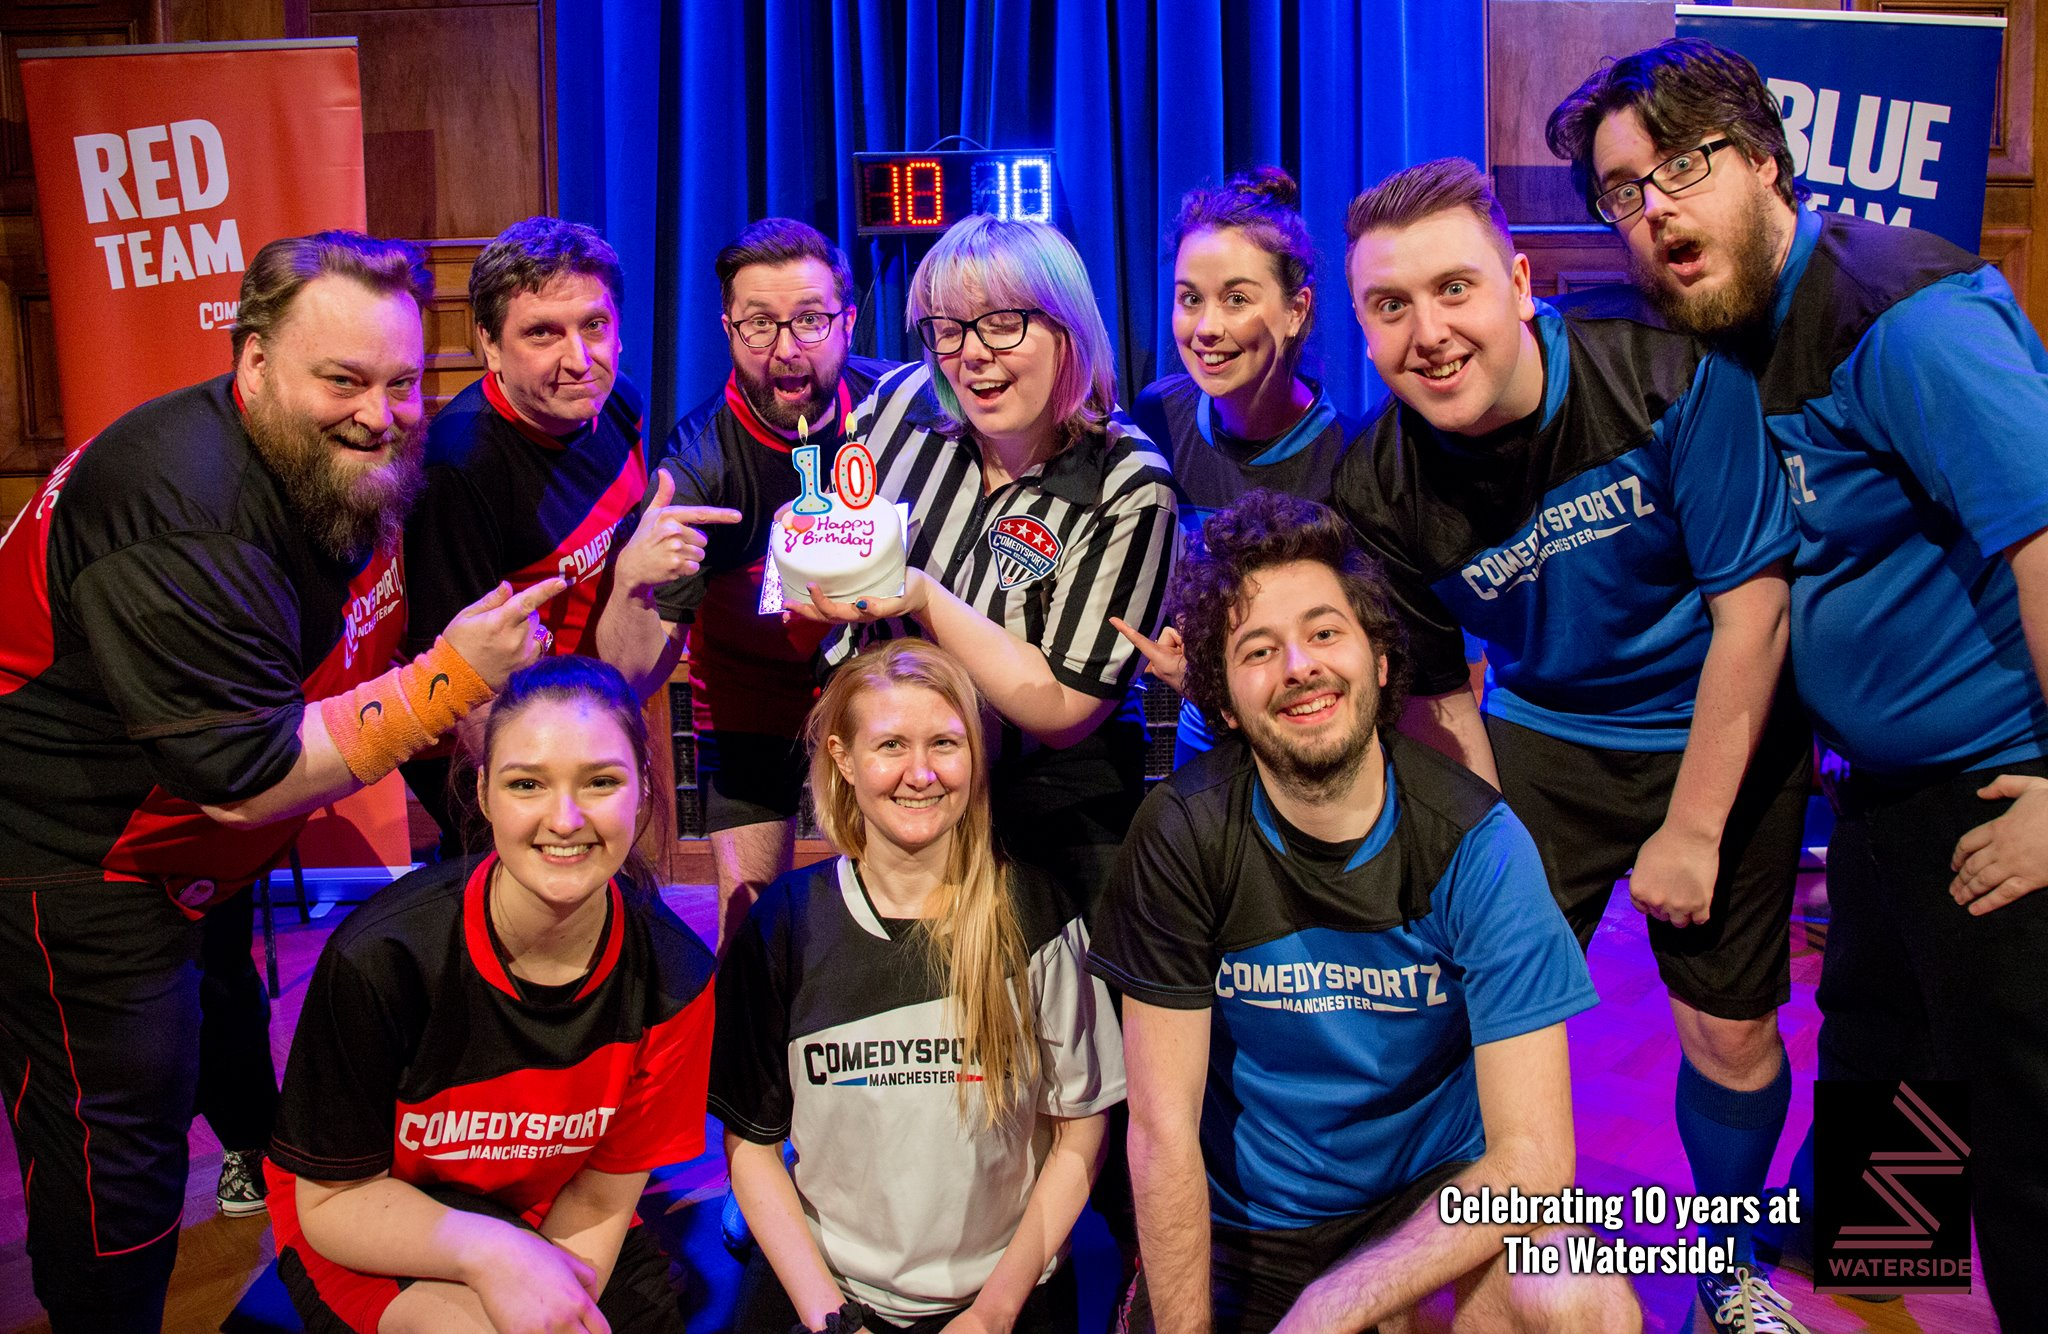 ComedySportz 10 Years At Waterside!